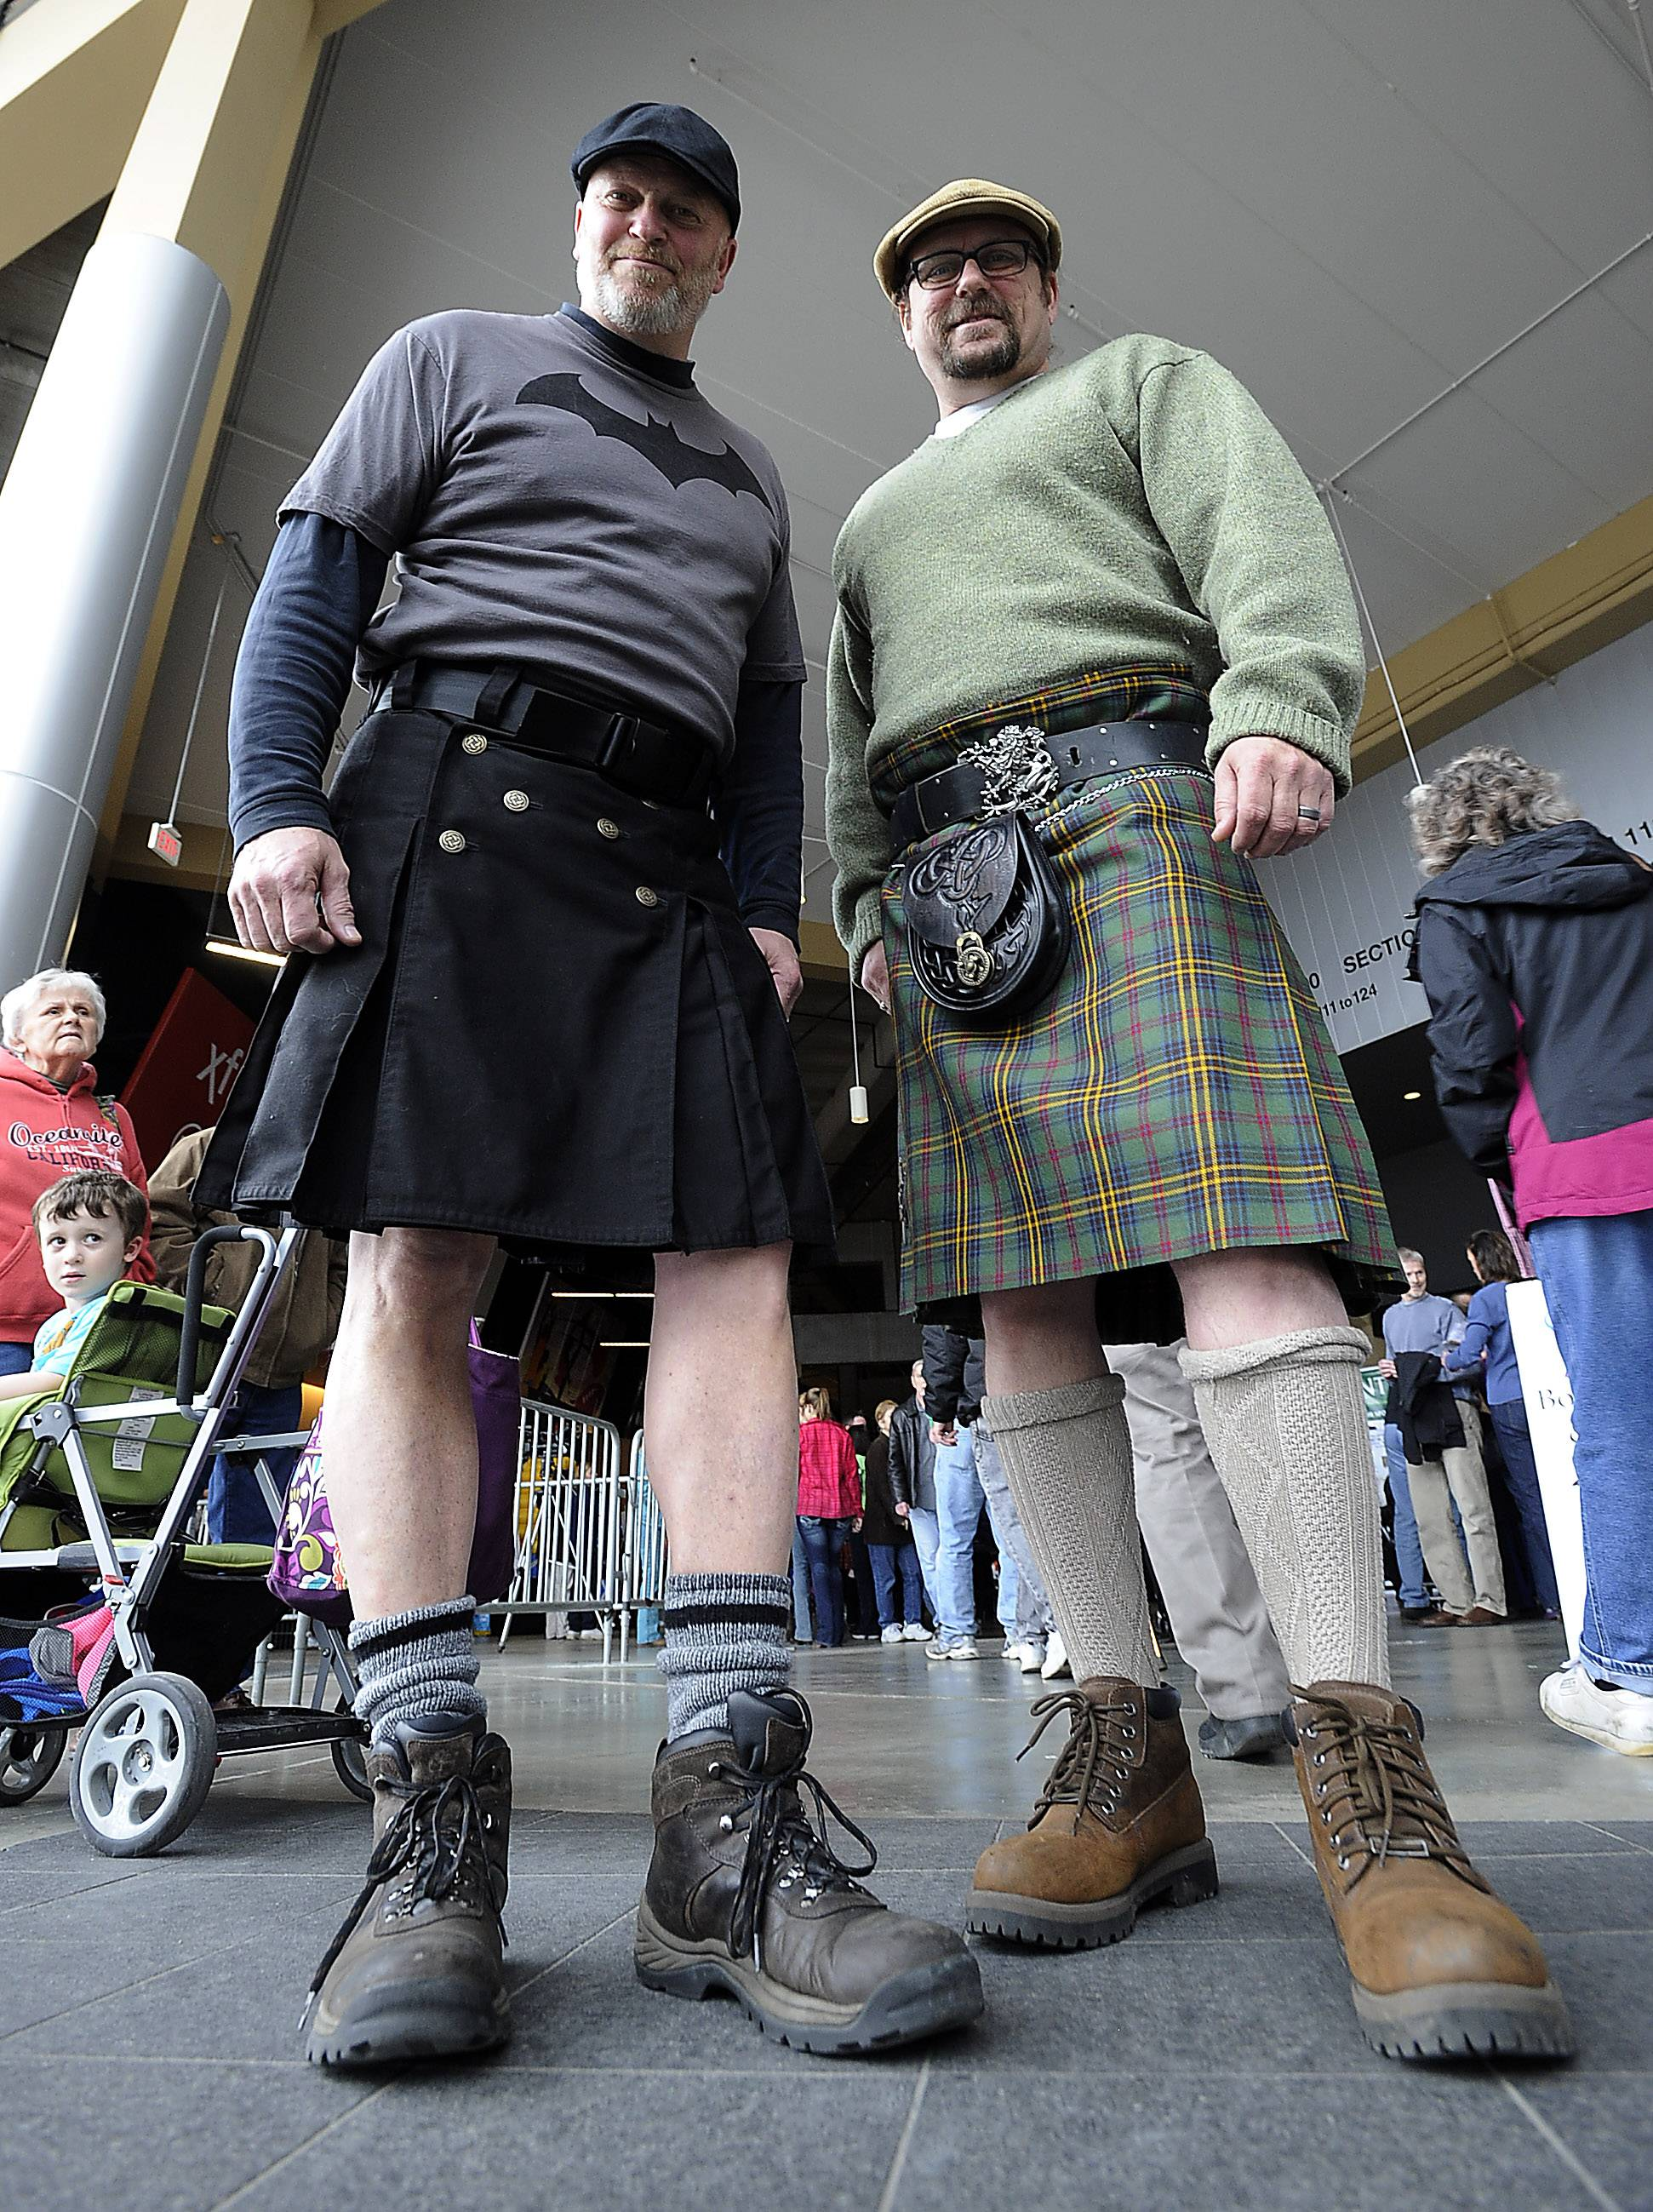 Bo Kaser of Carpentersville and his friend Jeff Kehoe of Elgin, right, don kilts Saturday at the third annual Northwest Celtic Fest at the Sears Centre in Hoffman Estates.